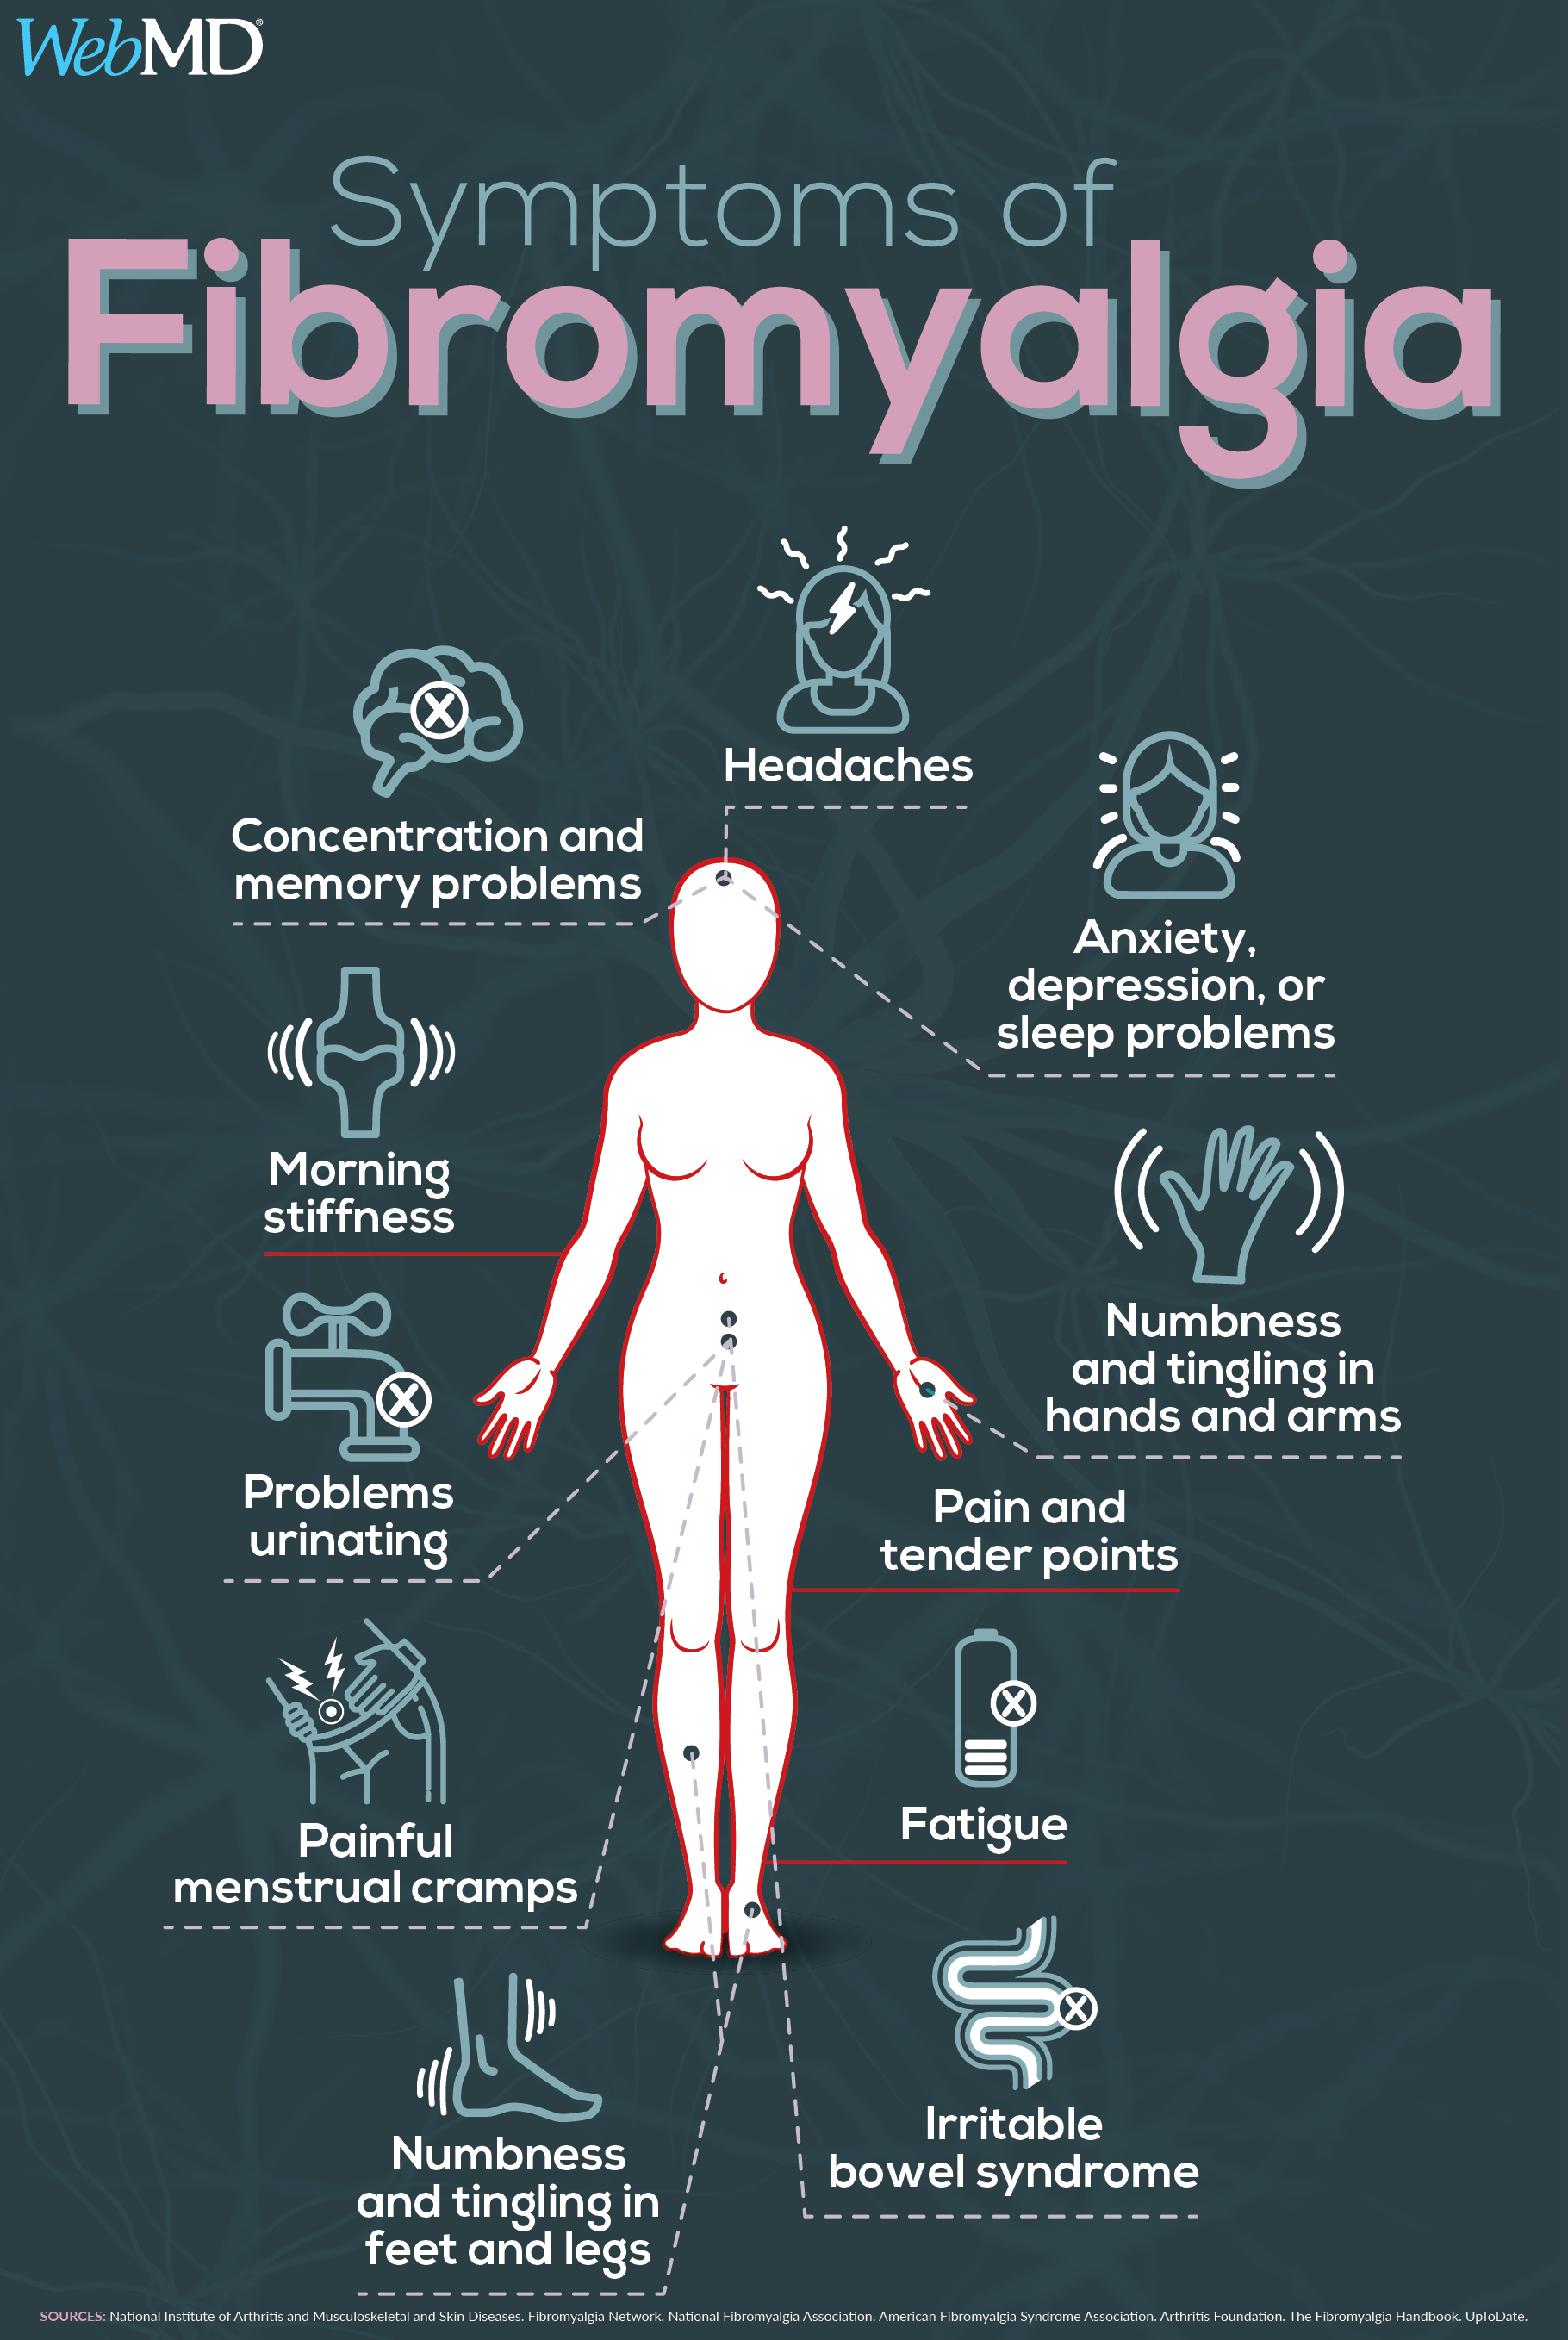 a Visual Guide to Understanding Fibromyalgia